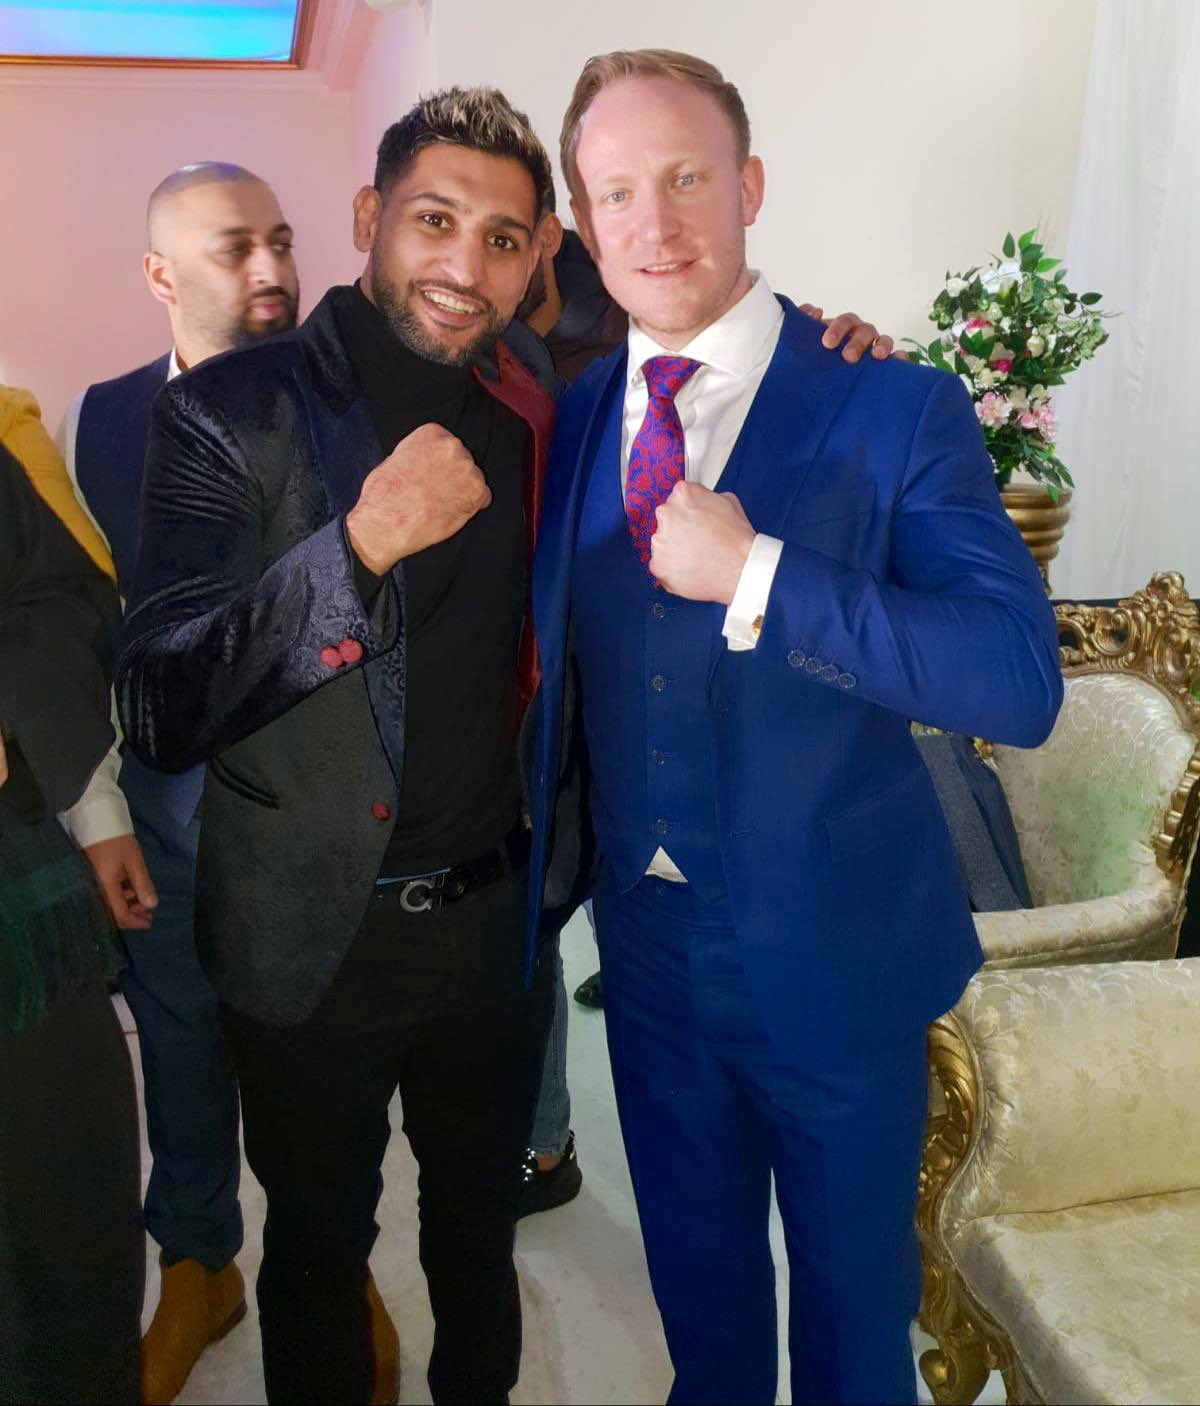 """Sam Tarry MP on Twitter: """"Thanks to @amirkingkhan for coming to Ilford last night to help raise funds for the Jamia noor ul Quran Masjid and community centre. Great plans ahead for"""